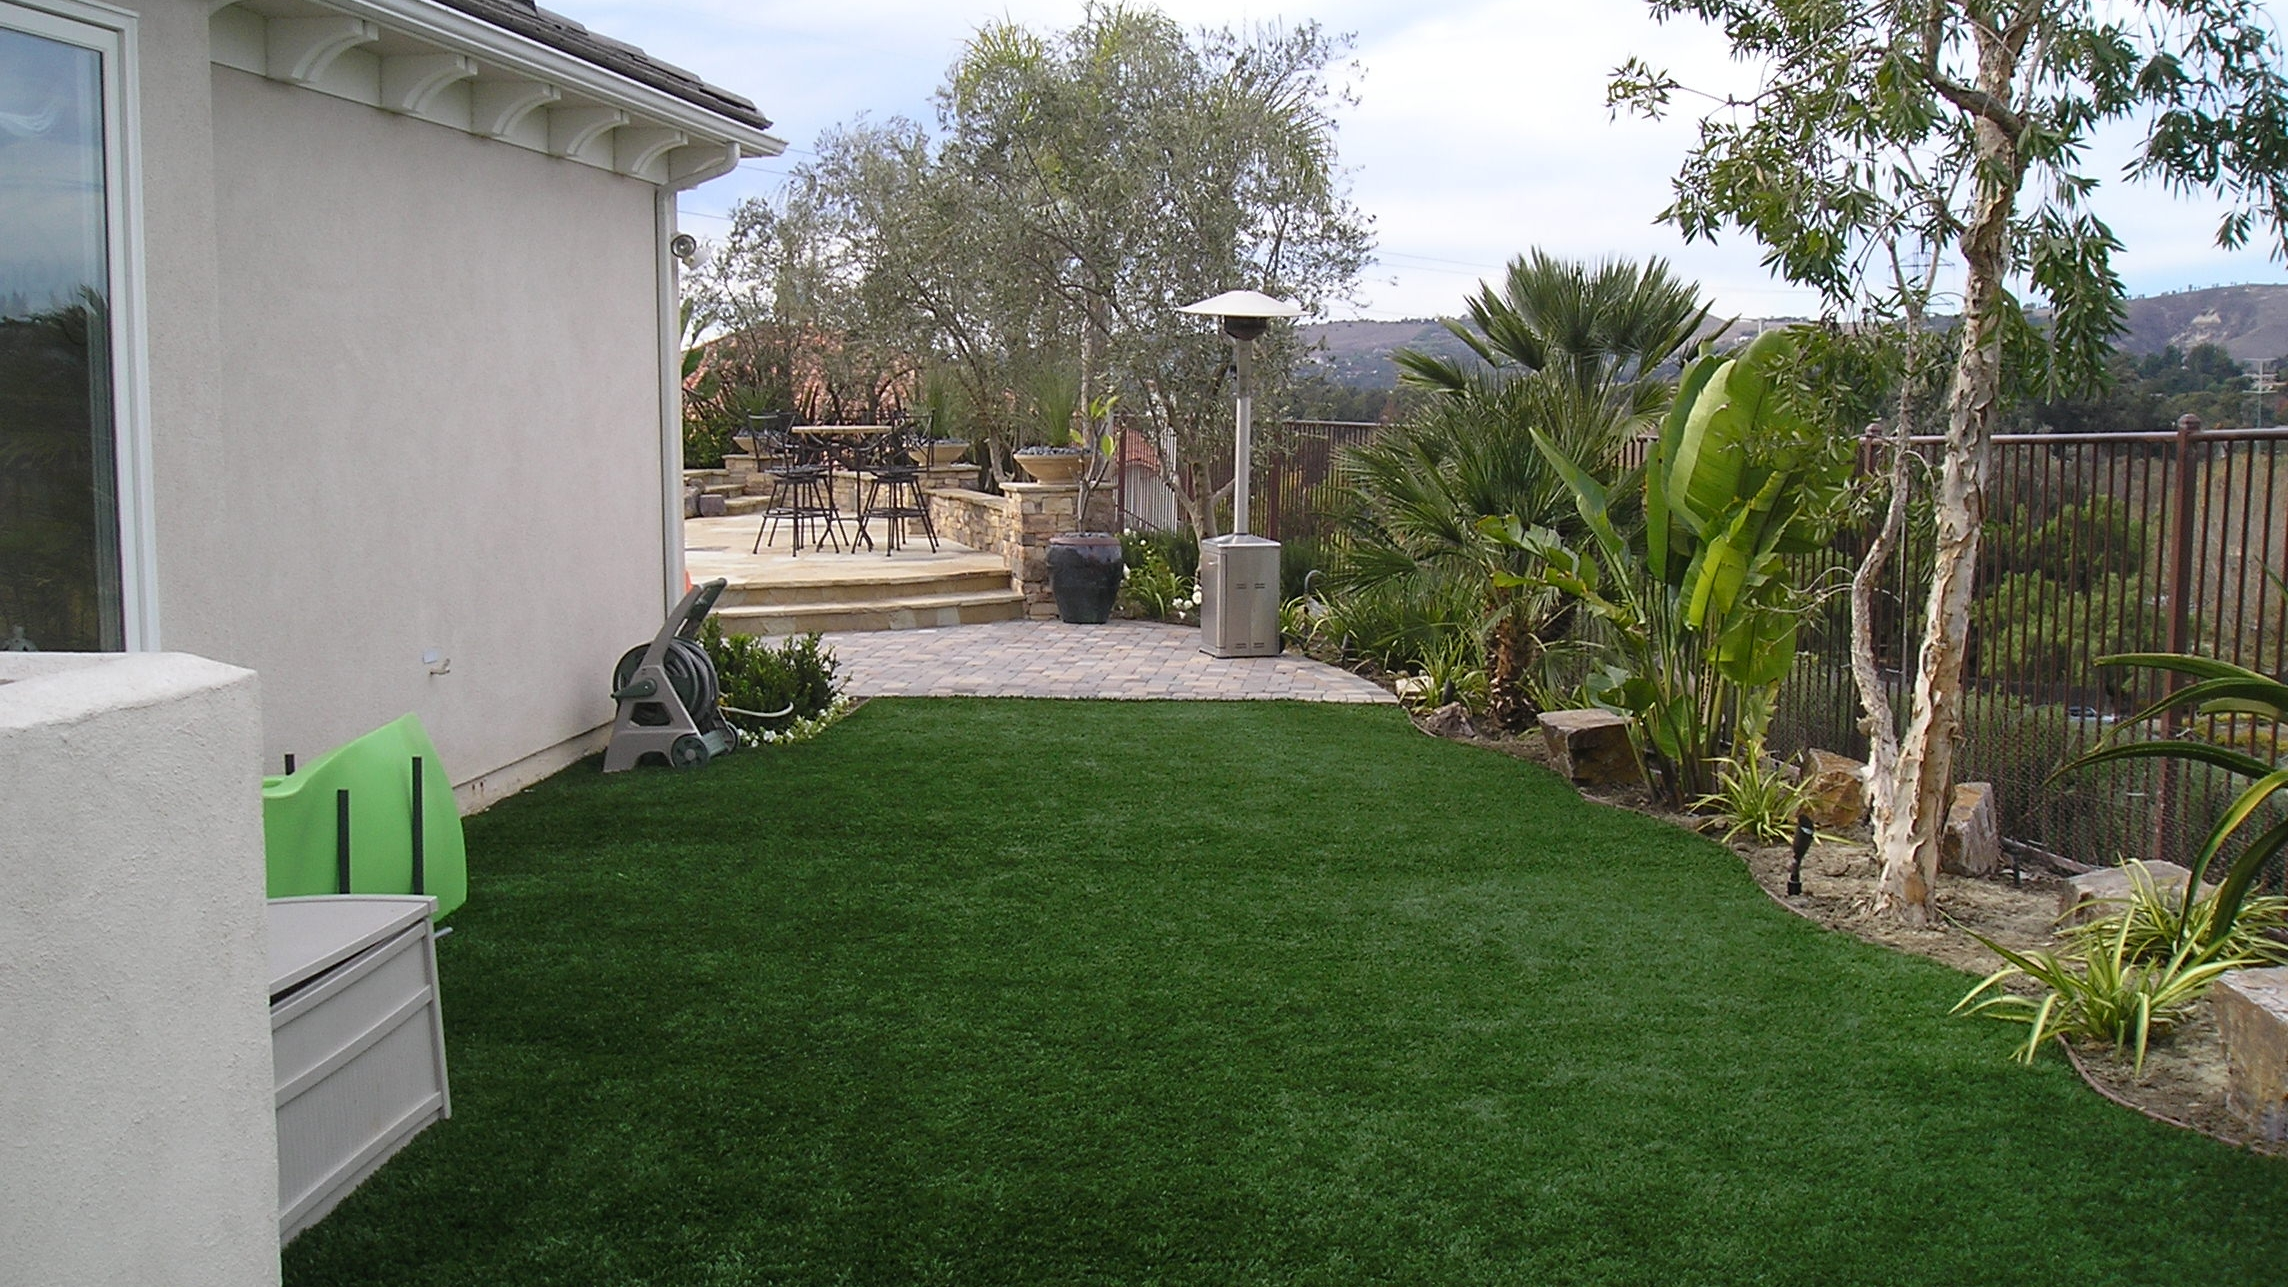 Full Recycle-91 pet friendly artificial grass,fake grass for yard,backyard turf,turf backyard,turf yard,fake grass for backyard,artificial turf,synthetic turf,artificial turf installation,how to install artificial turf,used artificial turf,pet friendly artificial grass